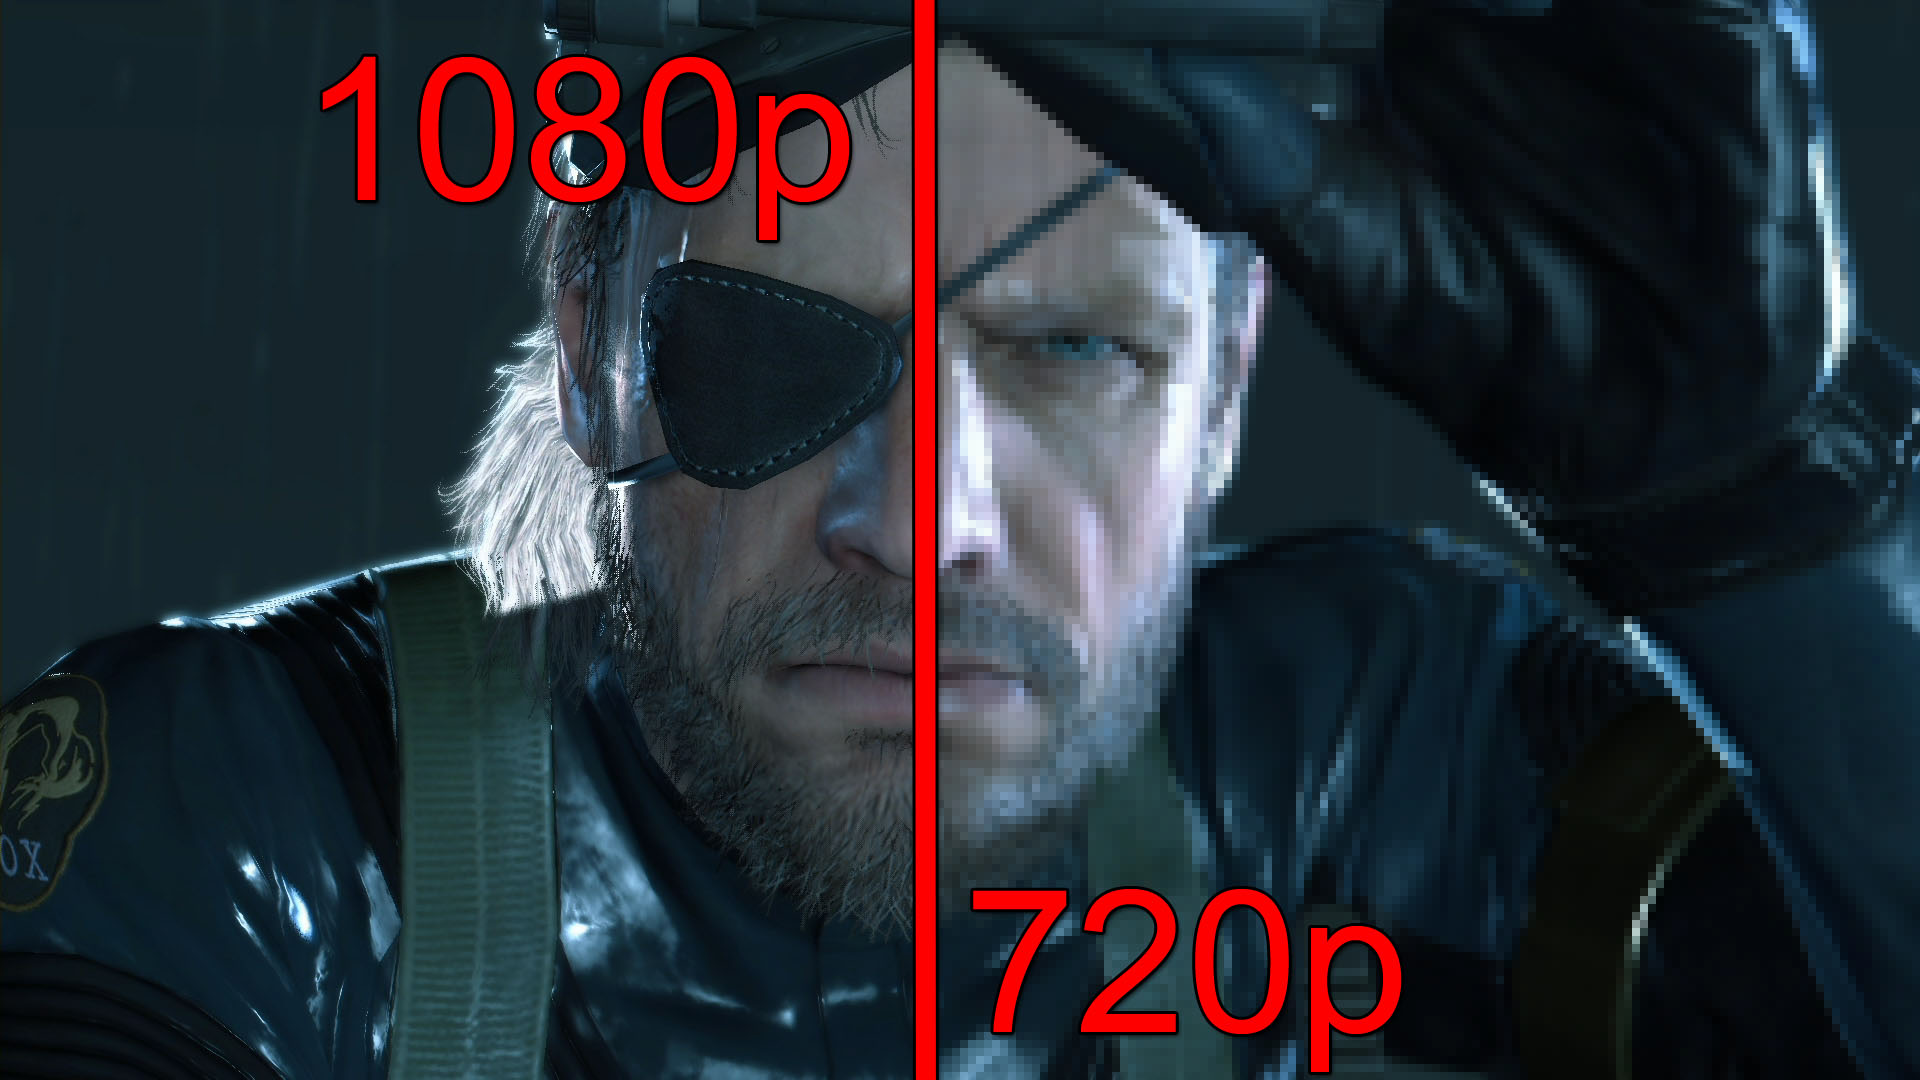 Metal Gear Solid V 1080p vs 720p Screenshot Comparison Will the Old 1920x1080